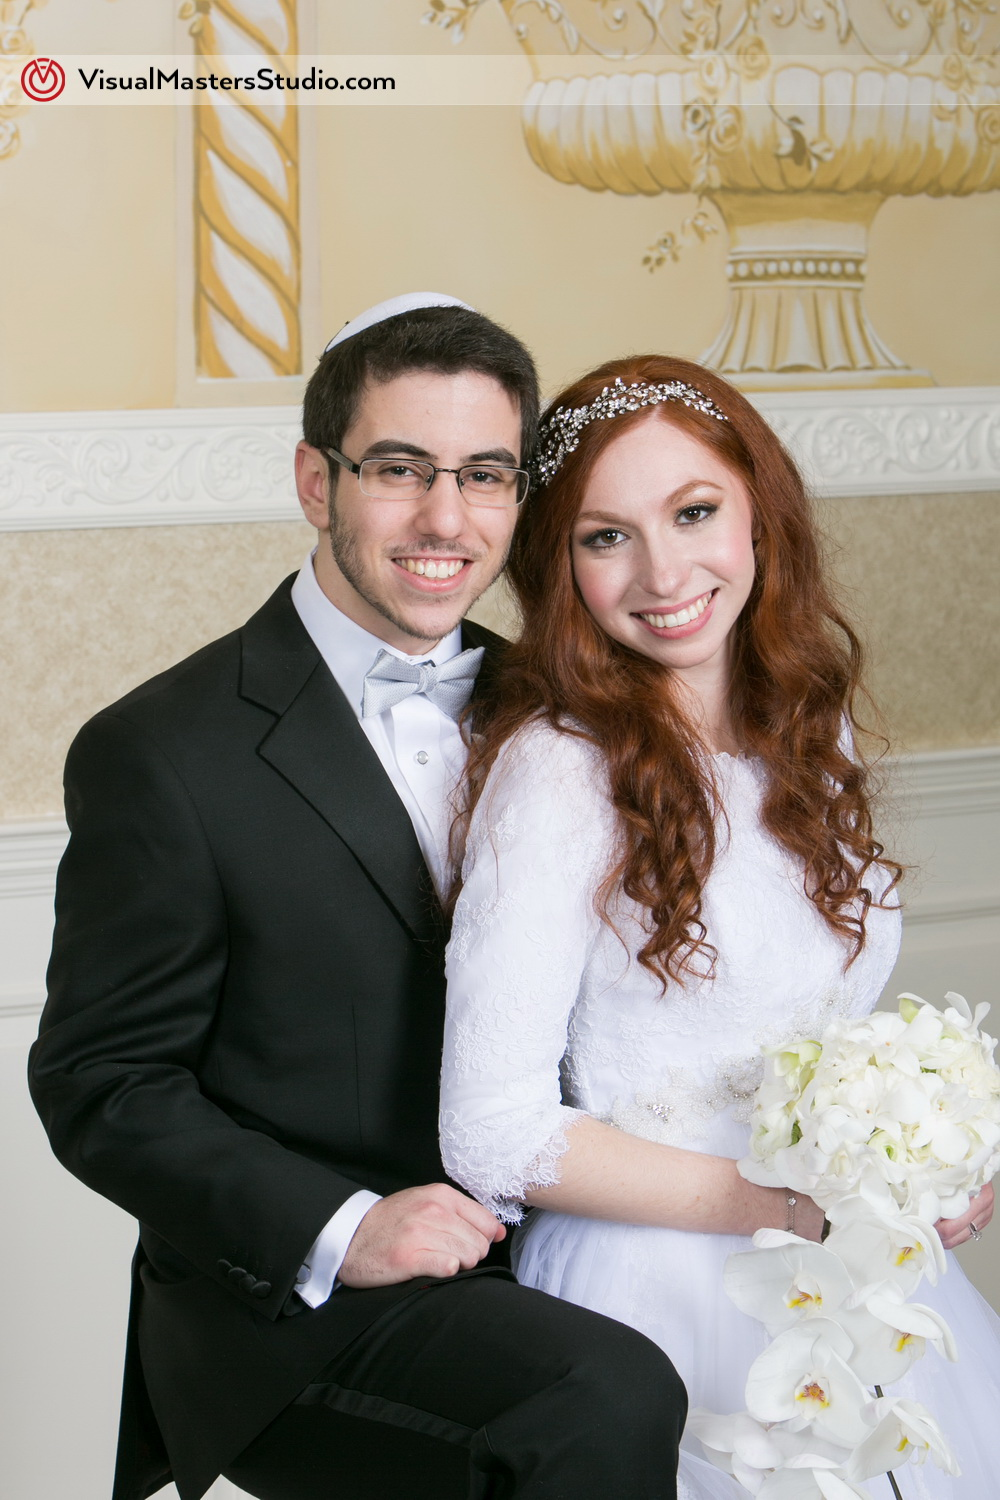 Bride and Groom Portrait at The Wilshire Grand by Visual Masters